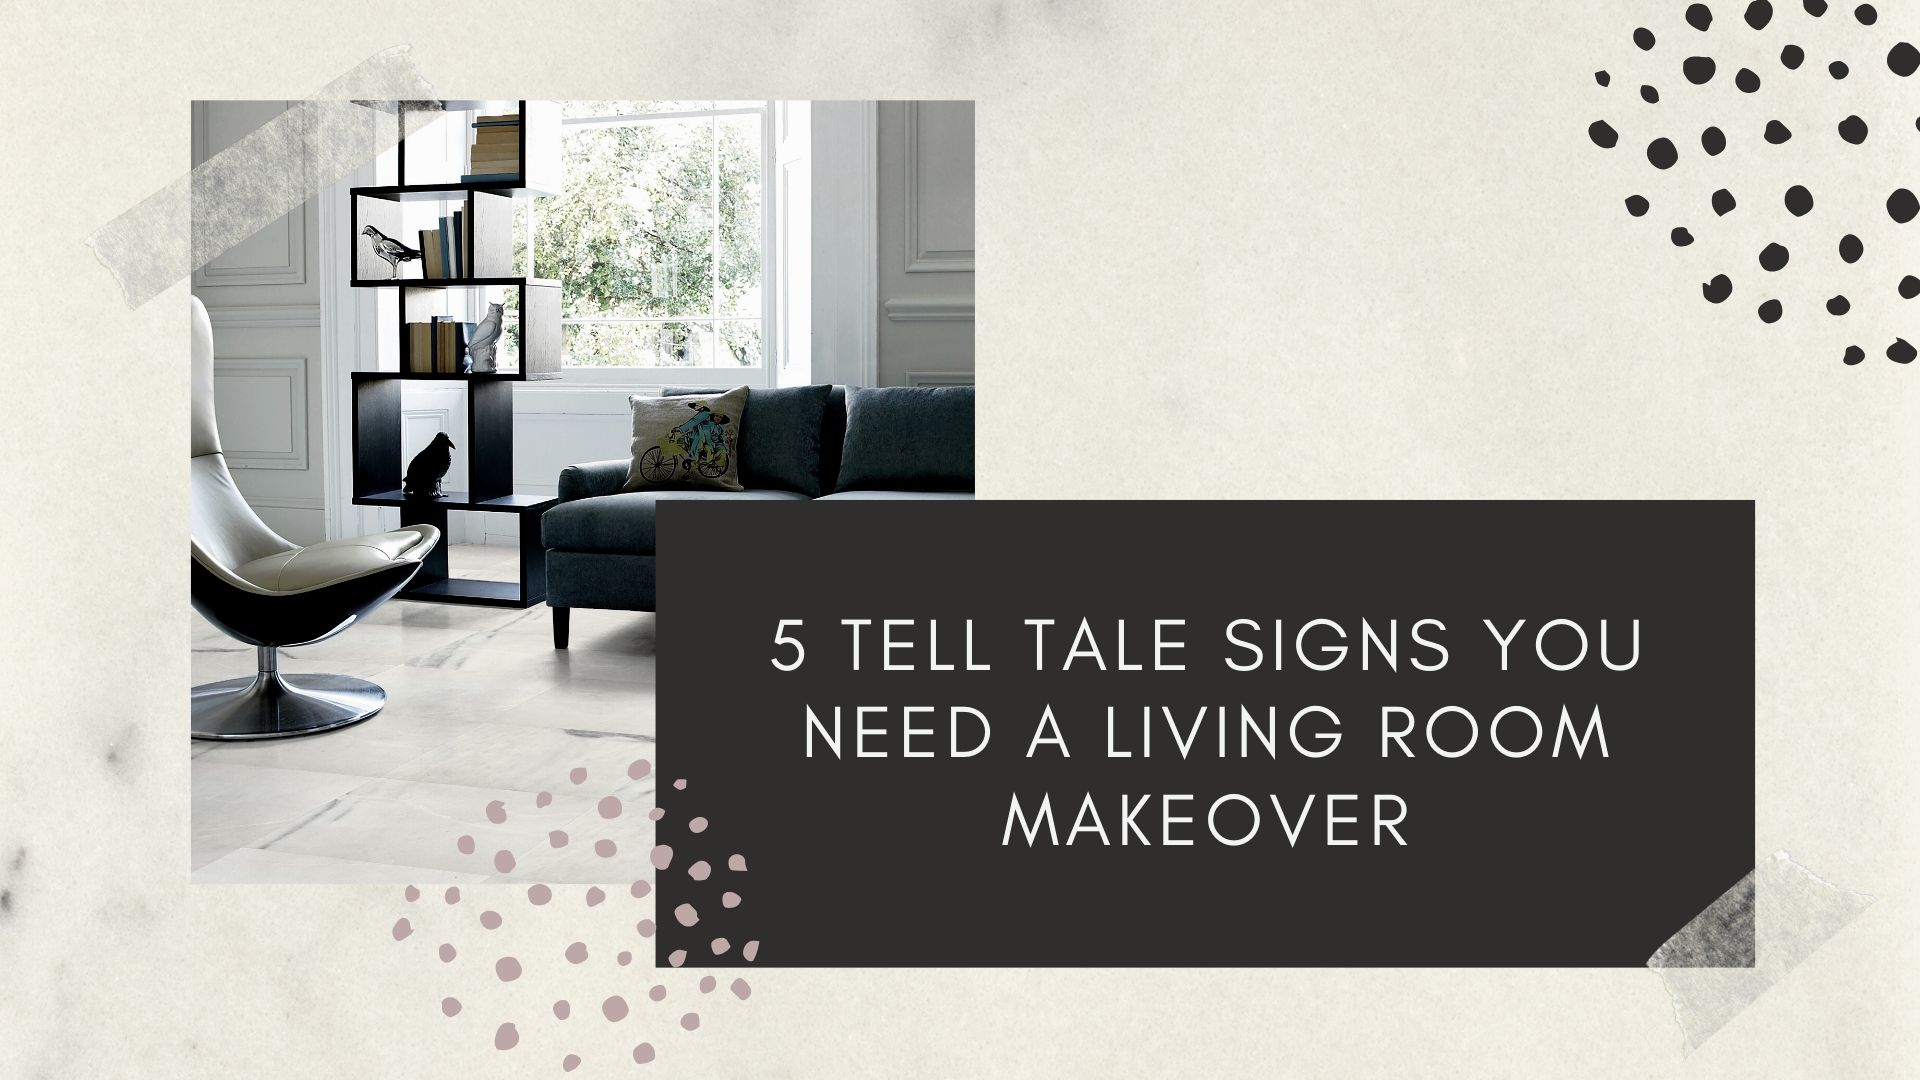 5 Tell tale signs you need a living room makeover | turkishmarblecompany